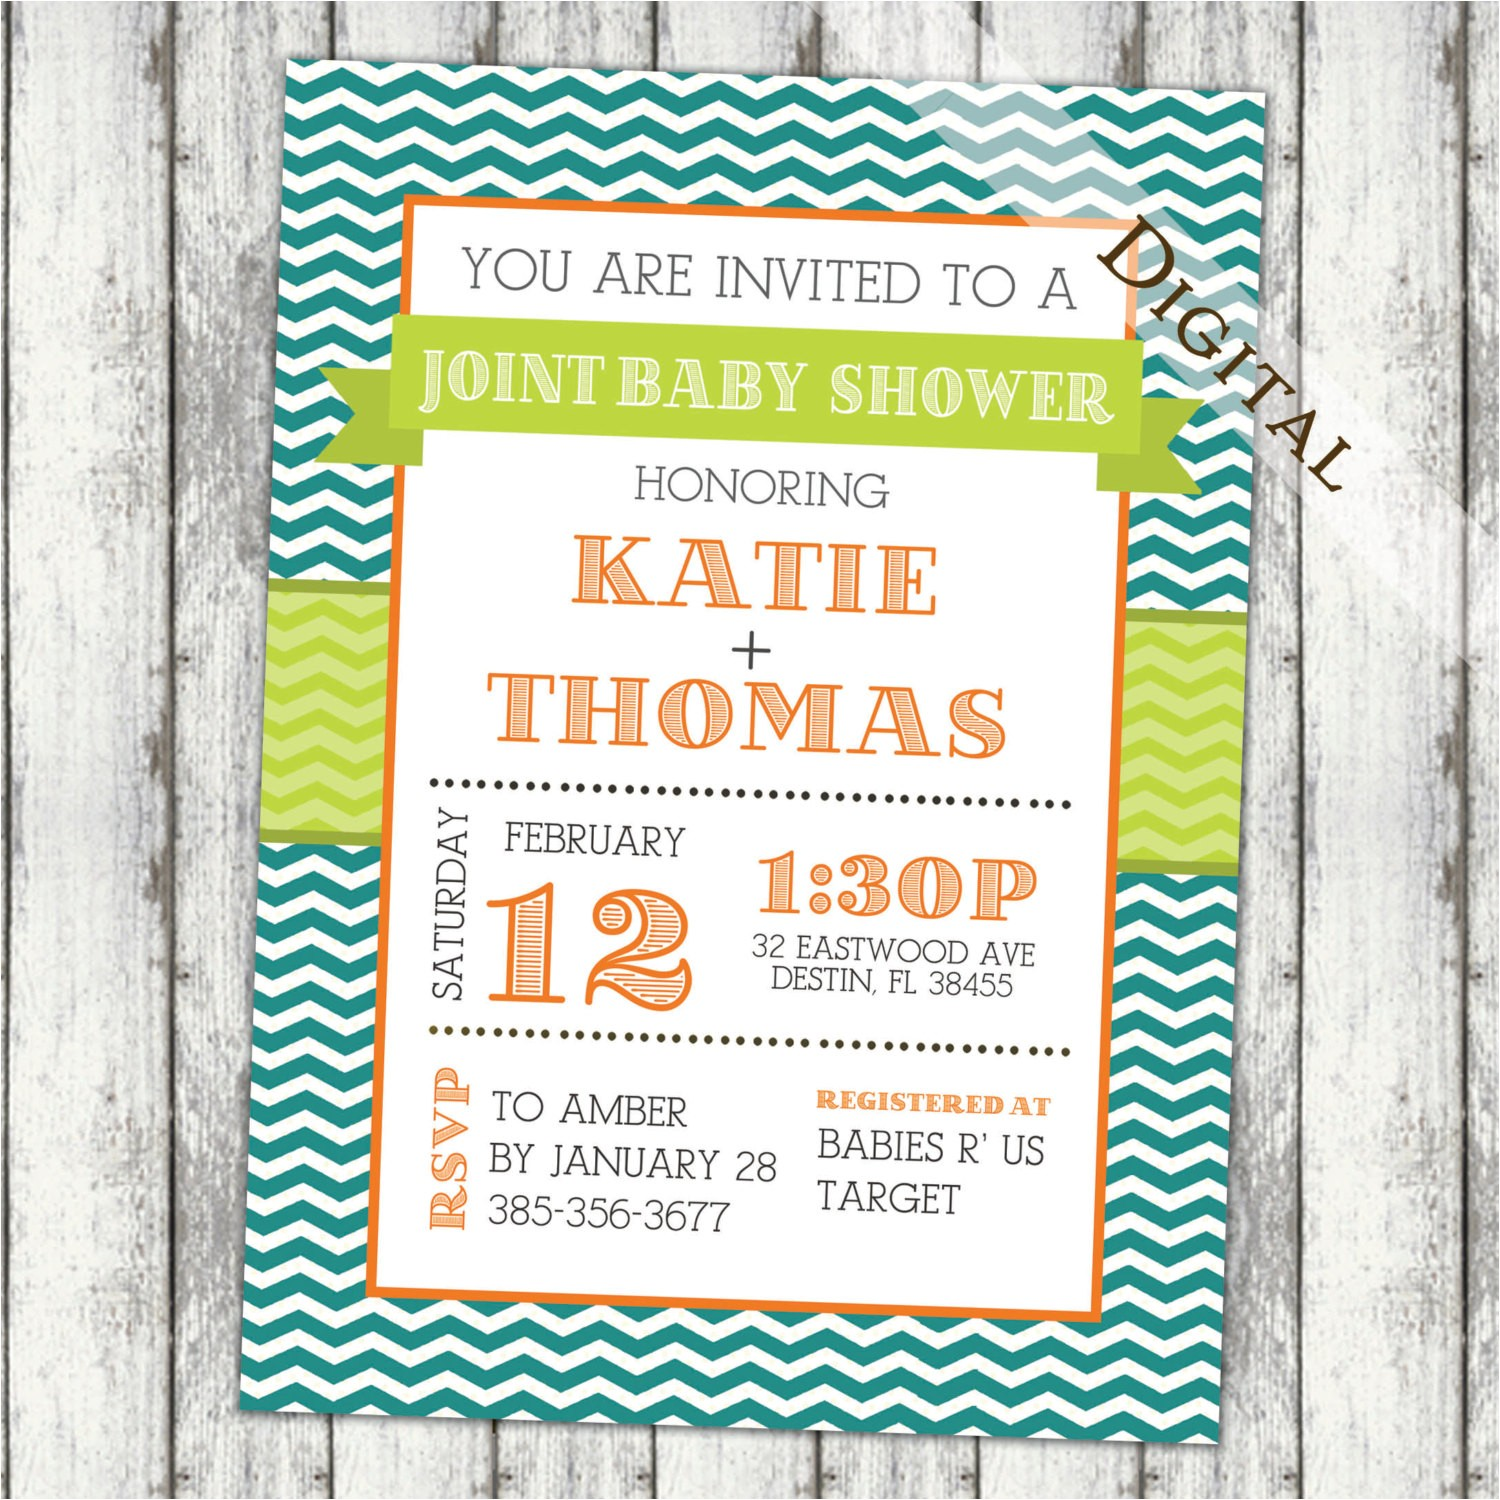 joint baby shower invitation couples